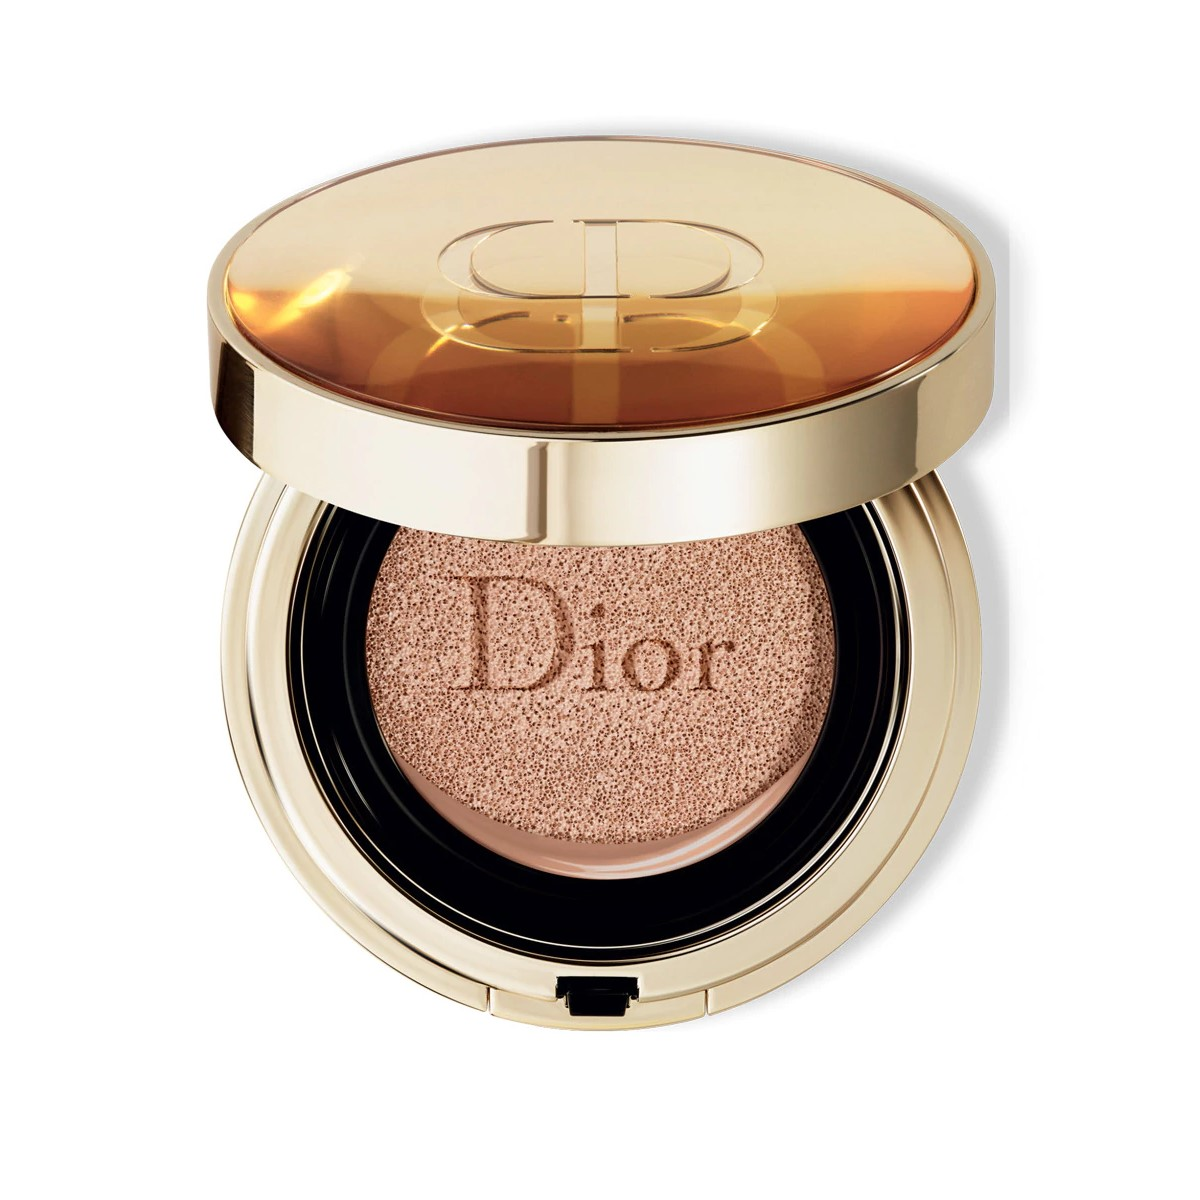 Dior Prestige, Le cushion teint de rose,